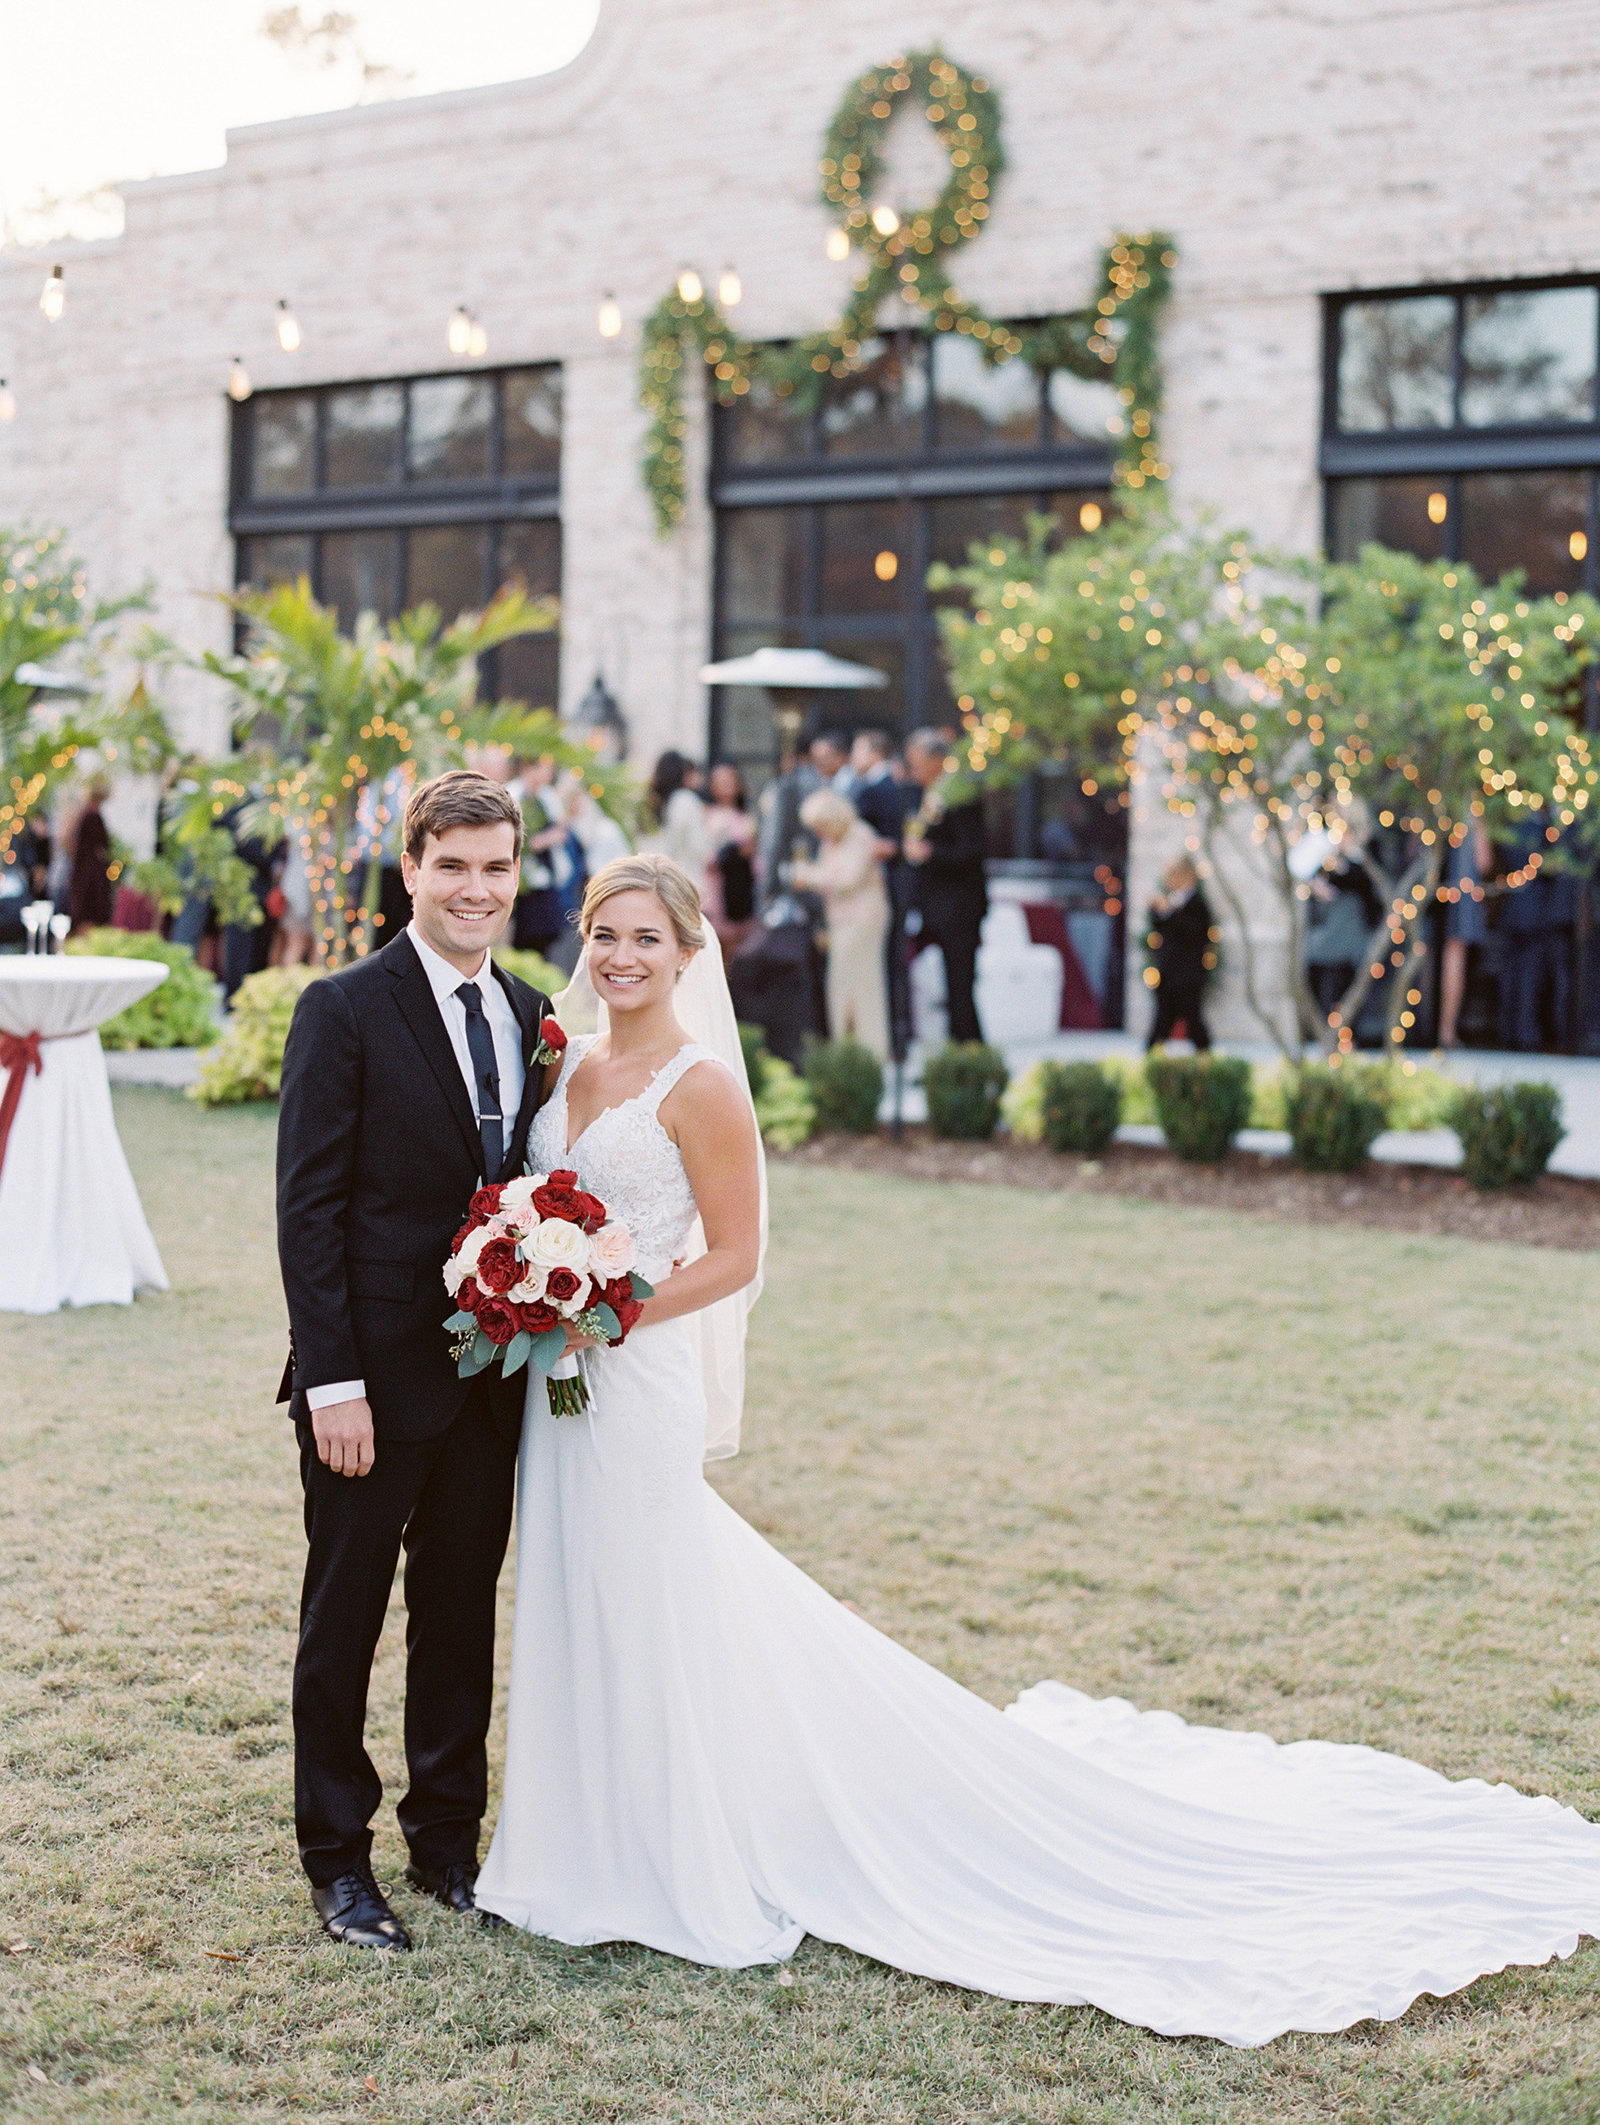 20171216-Pura-Soul-Photo-Wrightsville-Manor-Cortale-Wedding-film-57